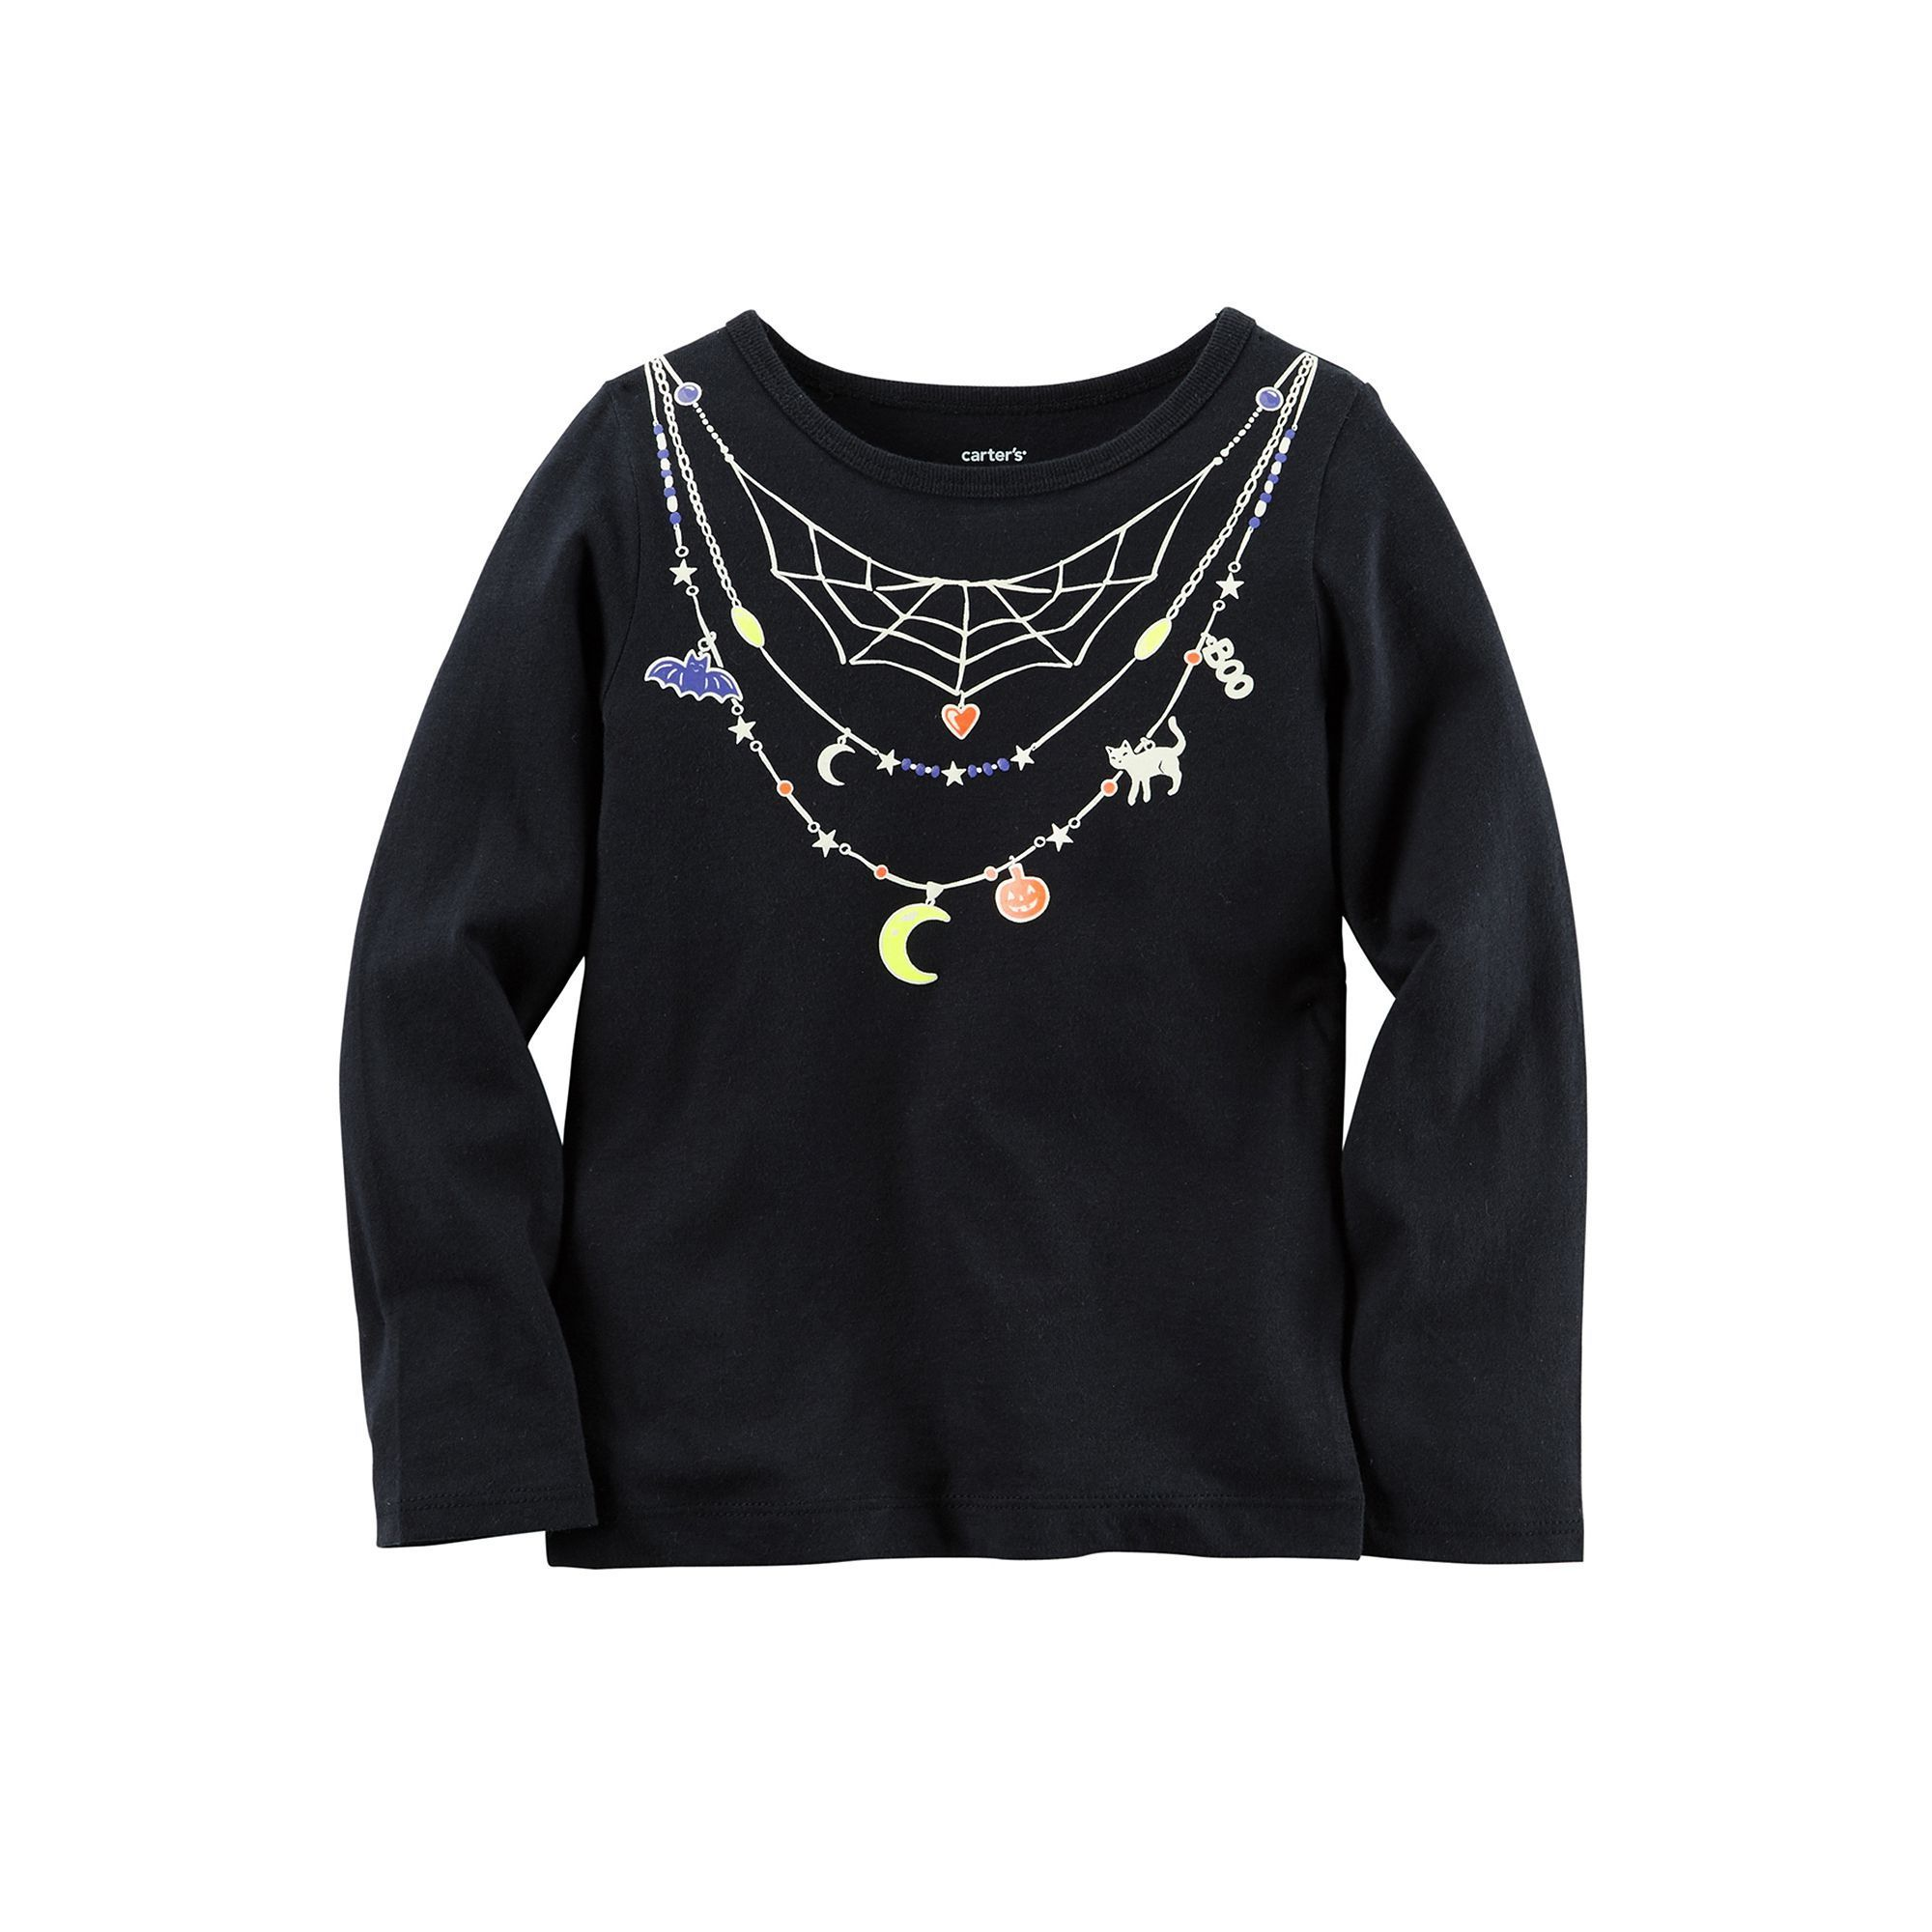 Baby Girl Carter s Necklace Halloween Tee Size 24 Months Black